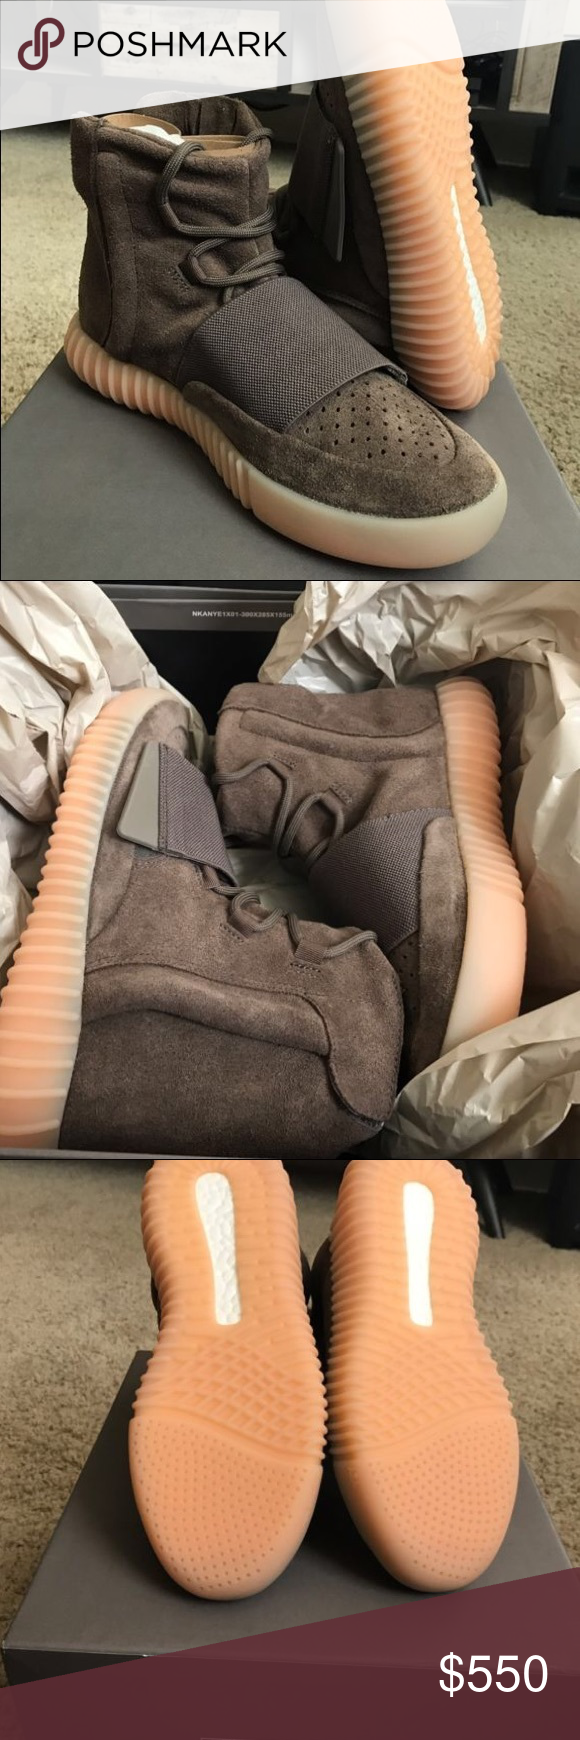 a28105eacd6ff6 Authentic Yeezy 750 Boost Gum Bottom (More Sizes) Have Few Sizes In Stock  Price Is Negotiable Text 818-856-3597 Only Accepting 🅿️ay🅿️al These Are  100% ...